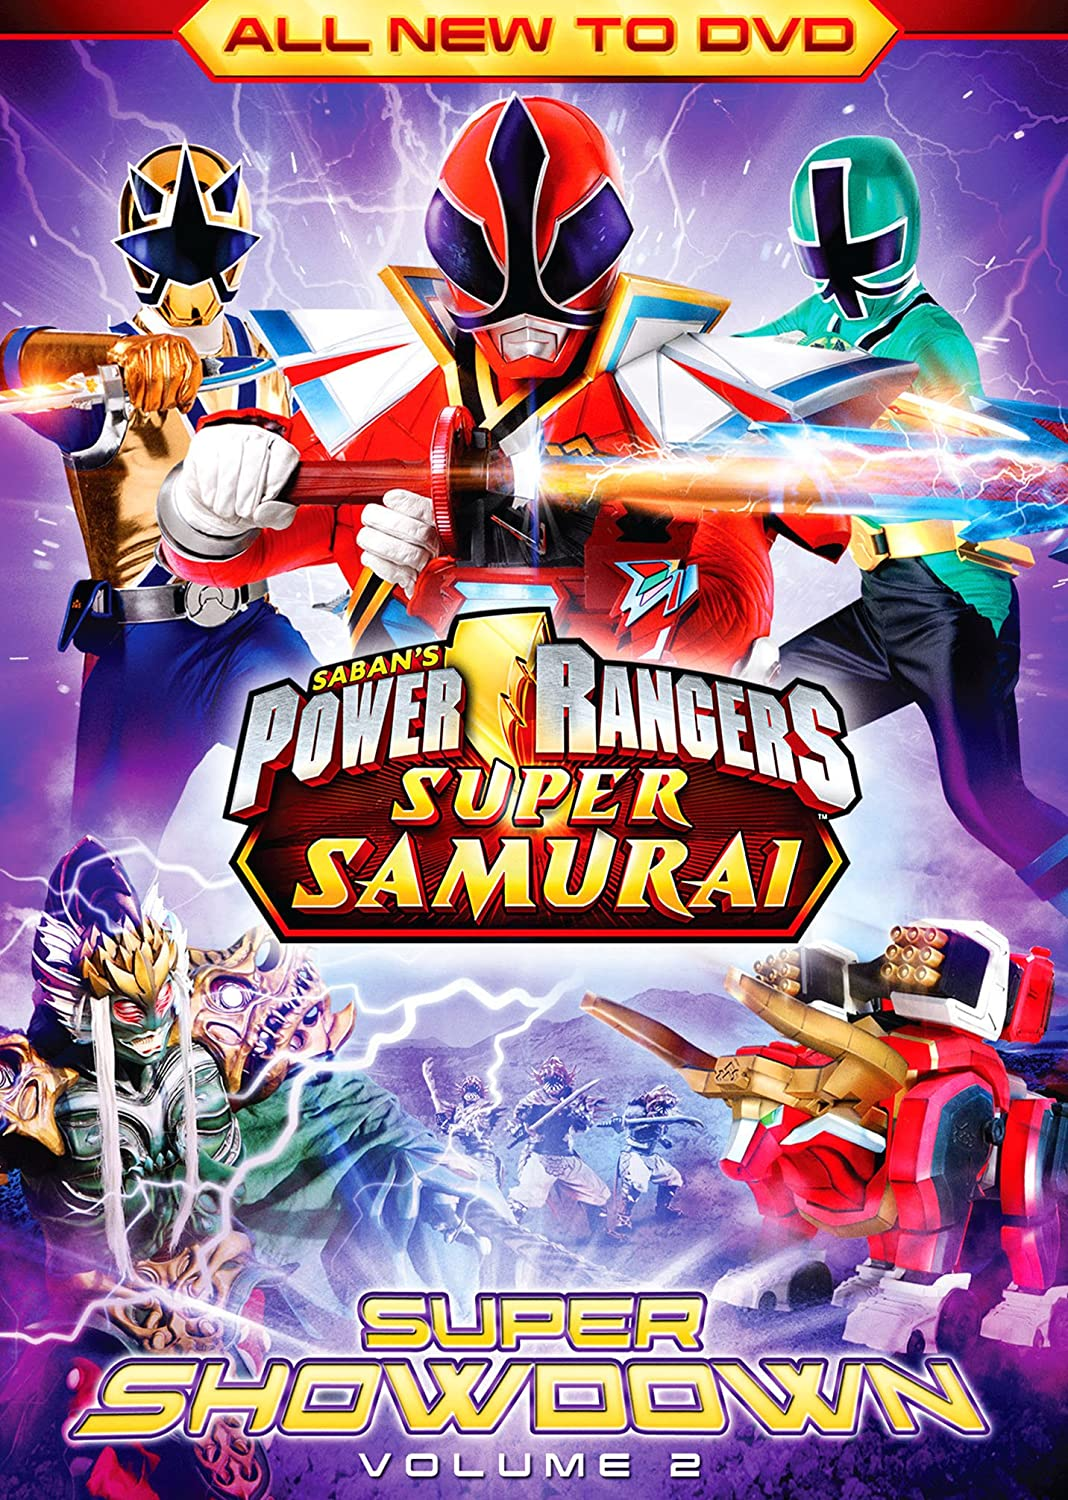 Power rangers samurai intolerable